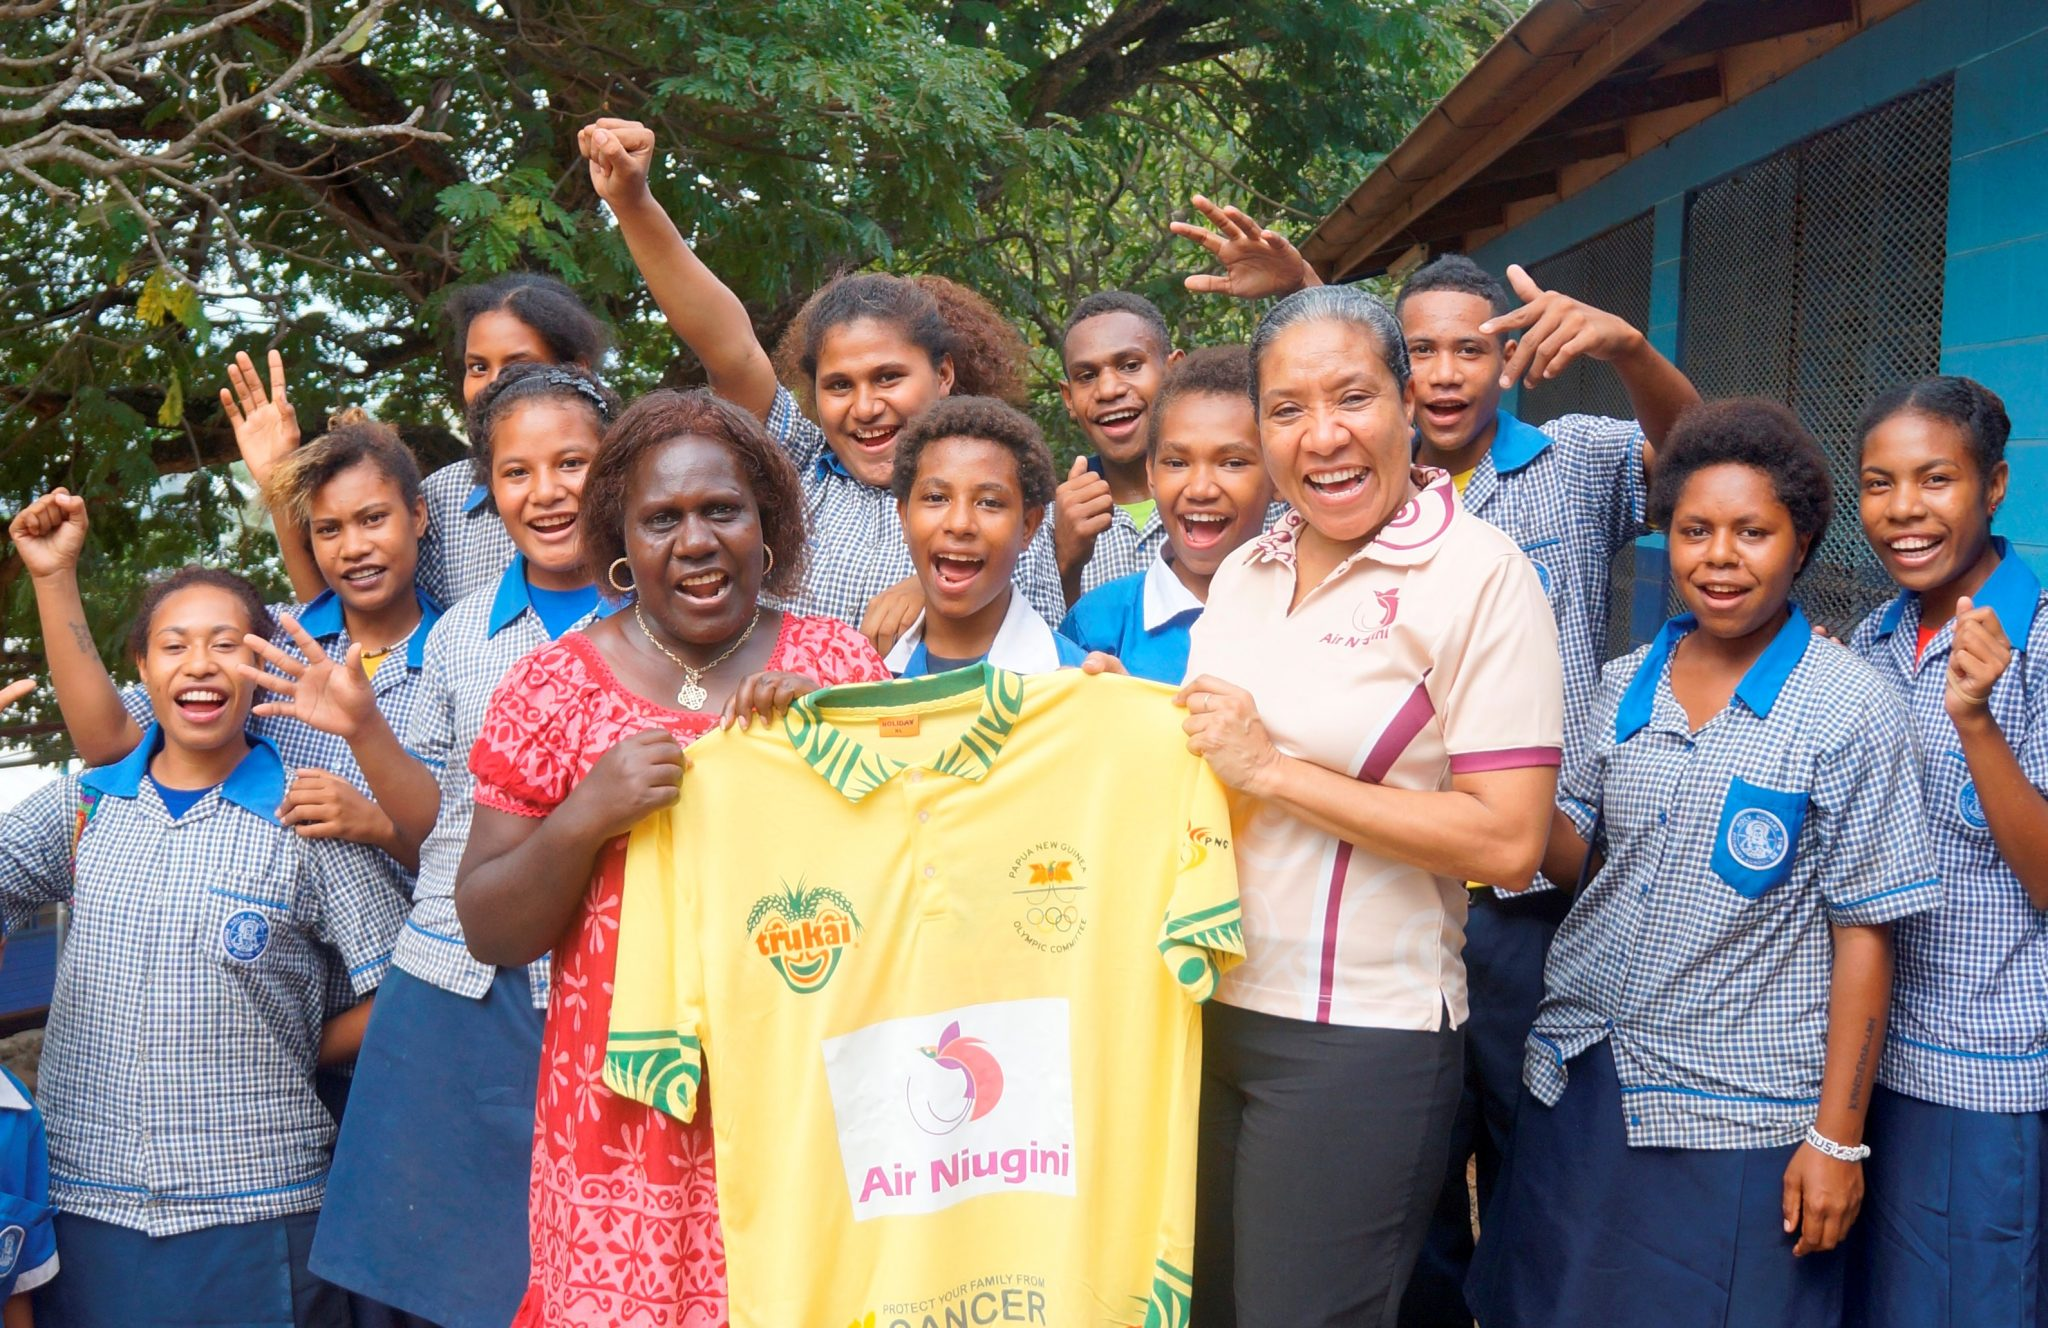 Air Niugini presents Fun Run shirts to schools